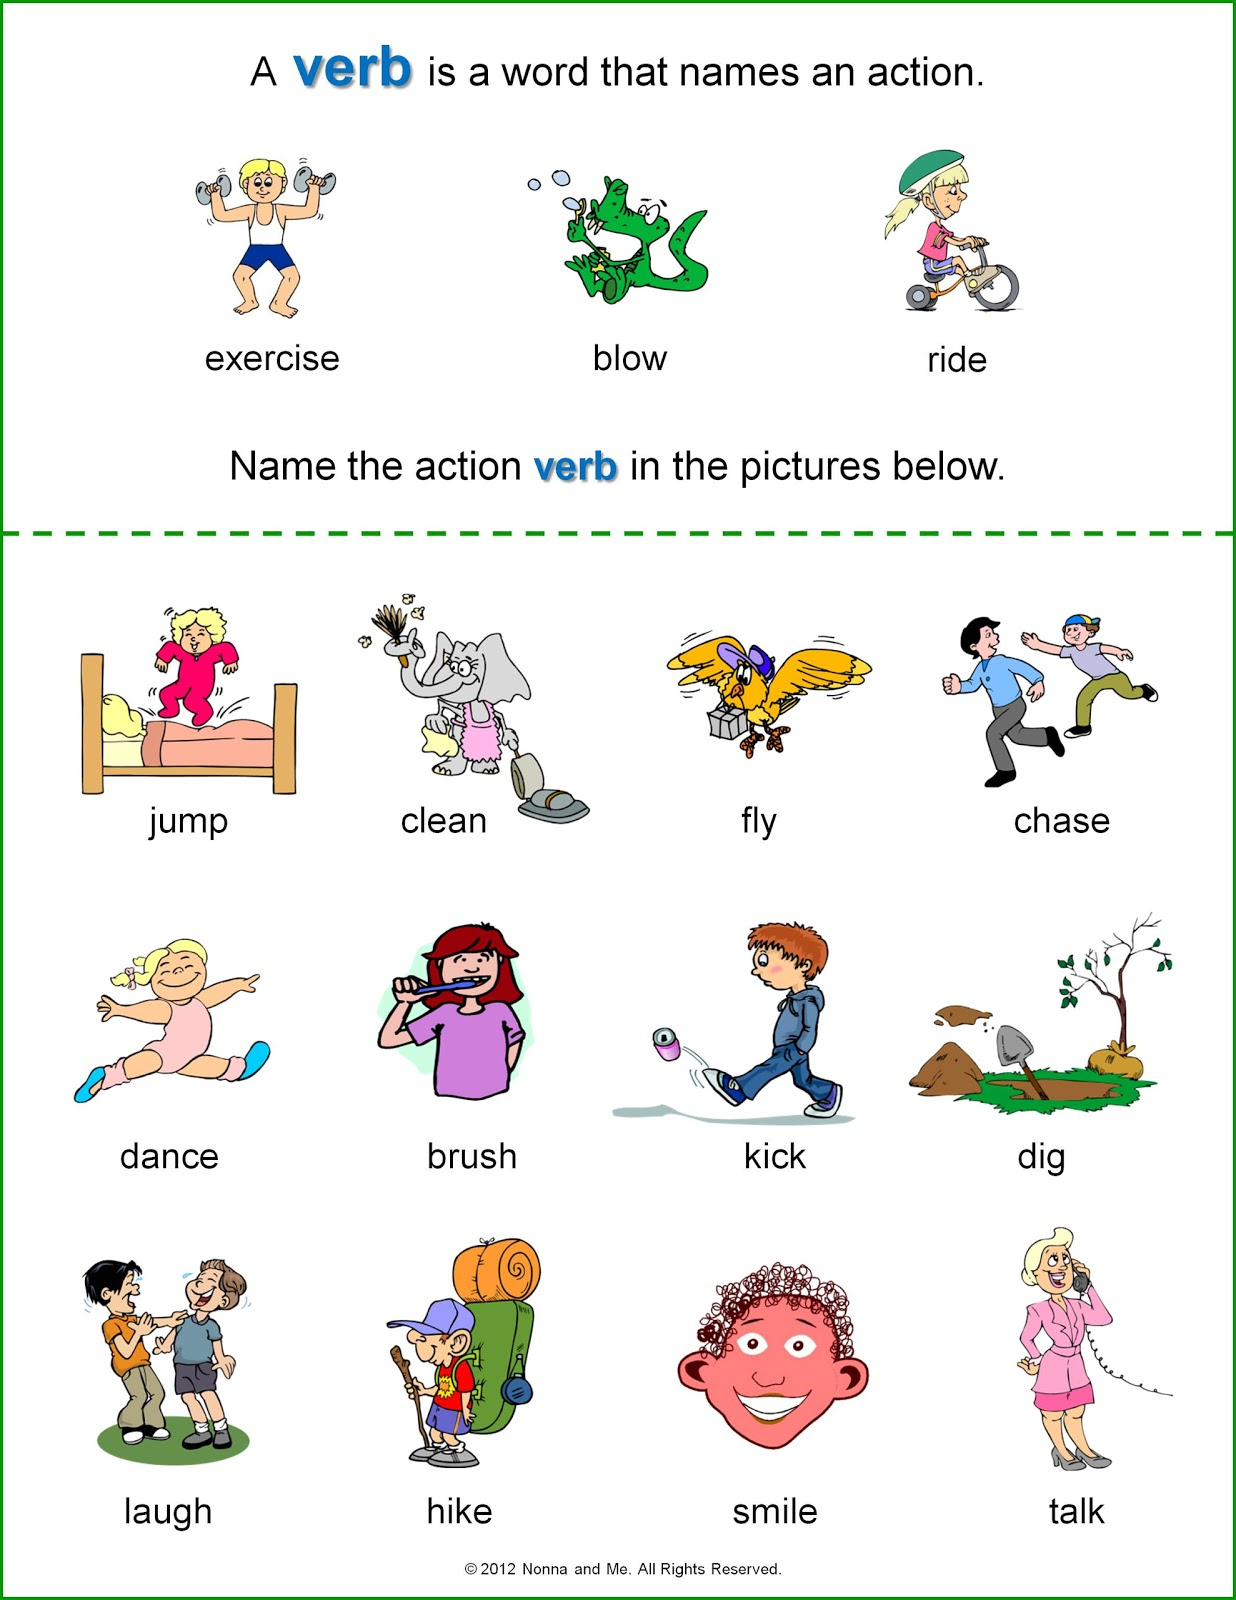 Verbs Worksheet Kindergarten kindergarten action verbs worksheet – Verbs Worksheet for Kindergarten